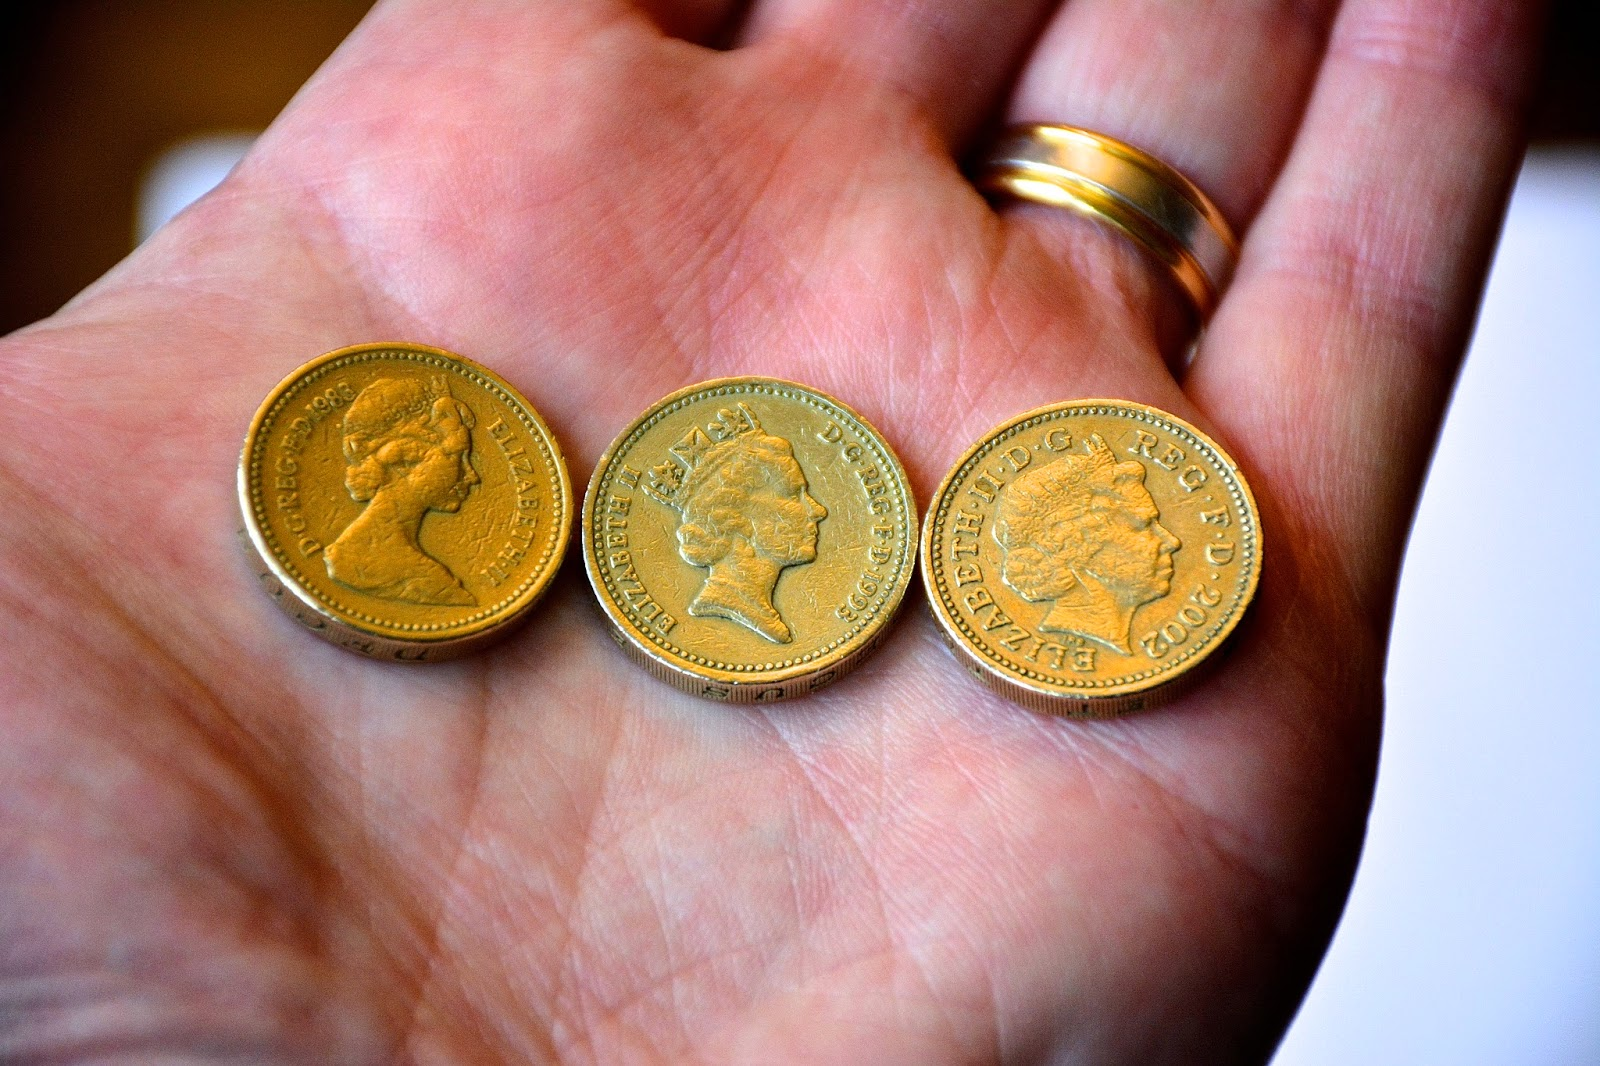 Second, third, and fourth coin portraits of Queen Elizabeth II